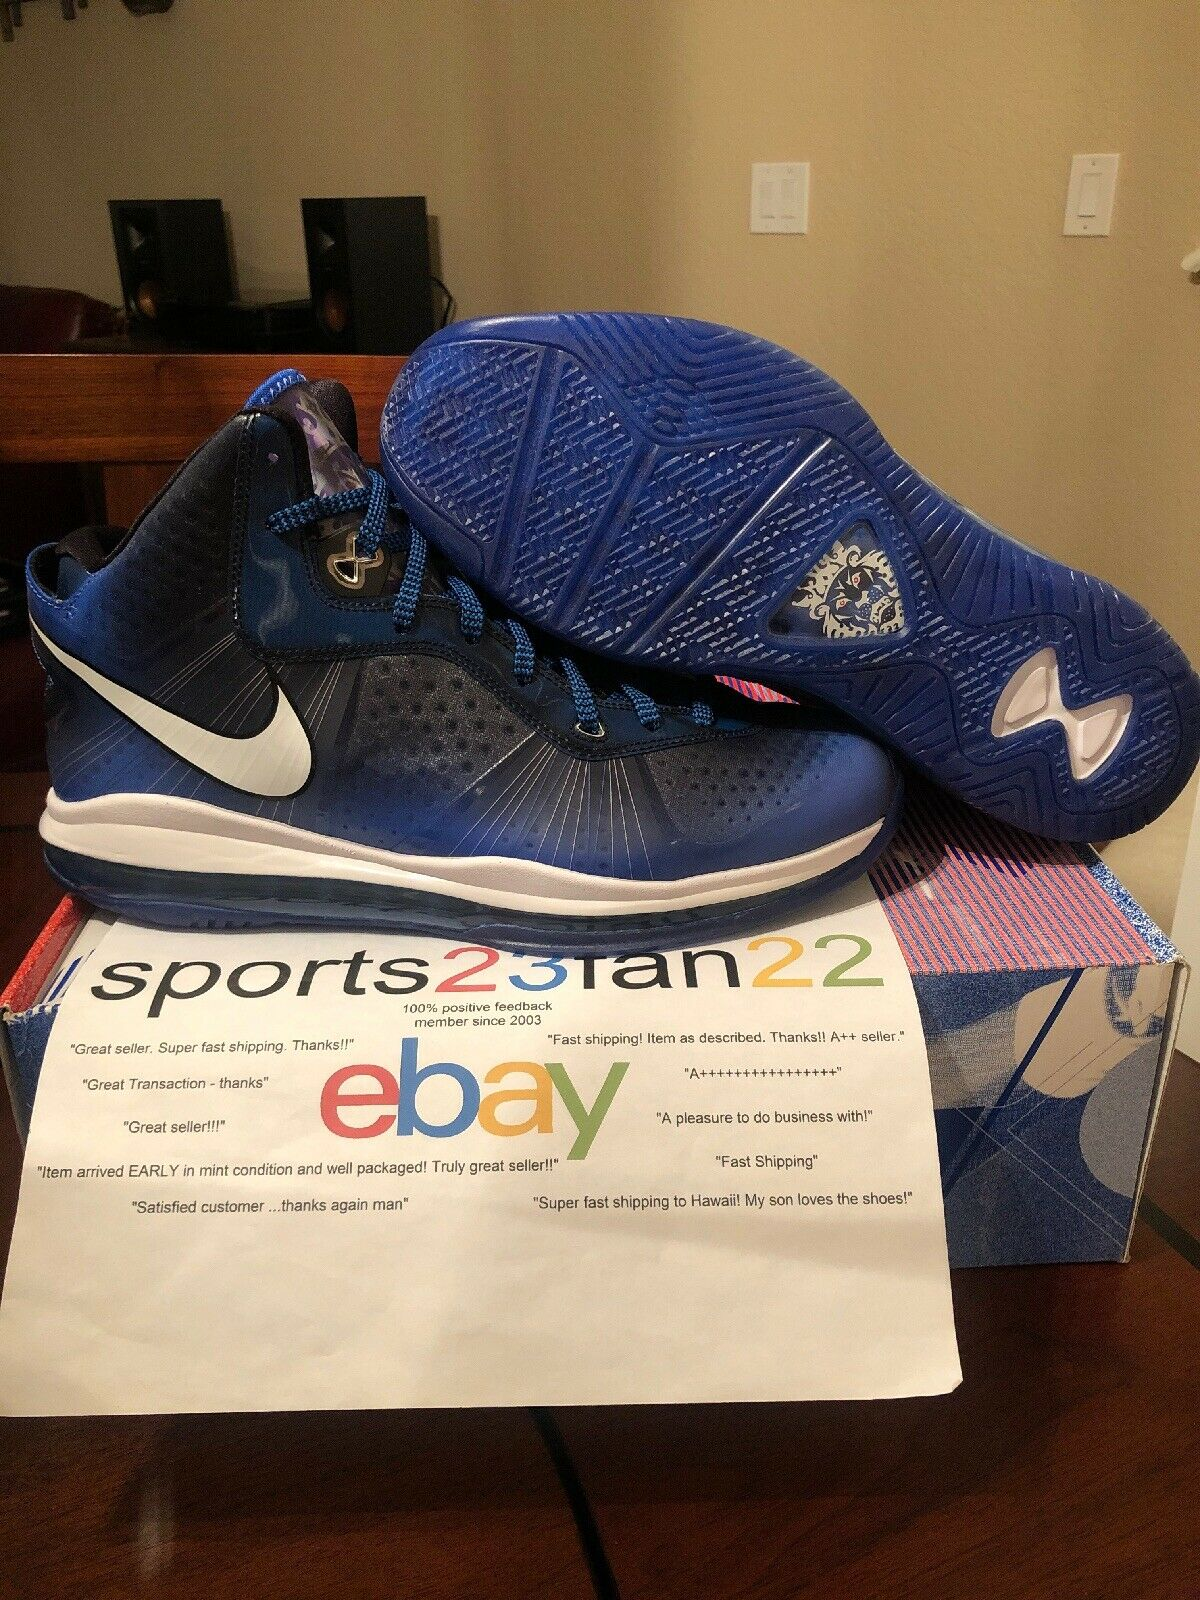 Nike LeBron 8 V 2 All Star Edition Size 13 Deadstock New In Box NIB